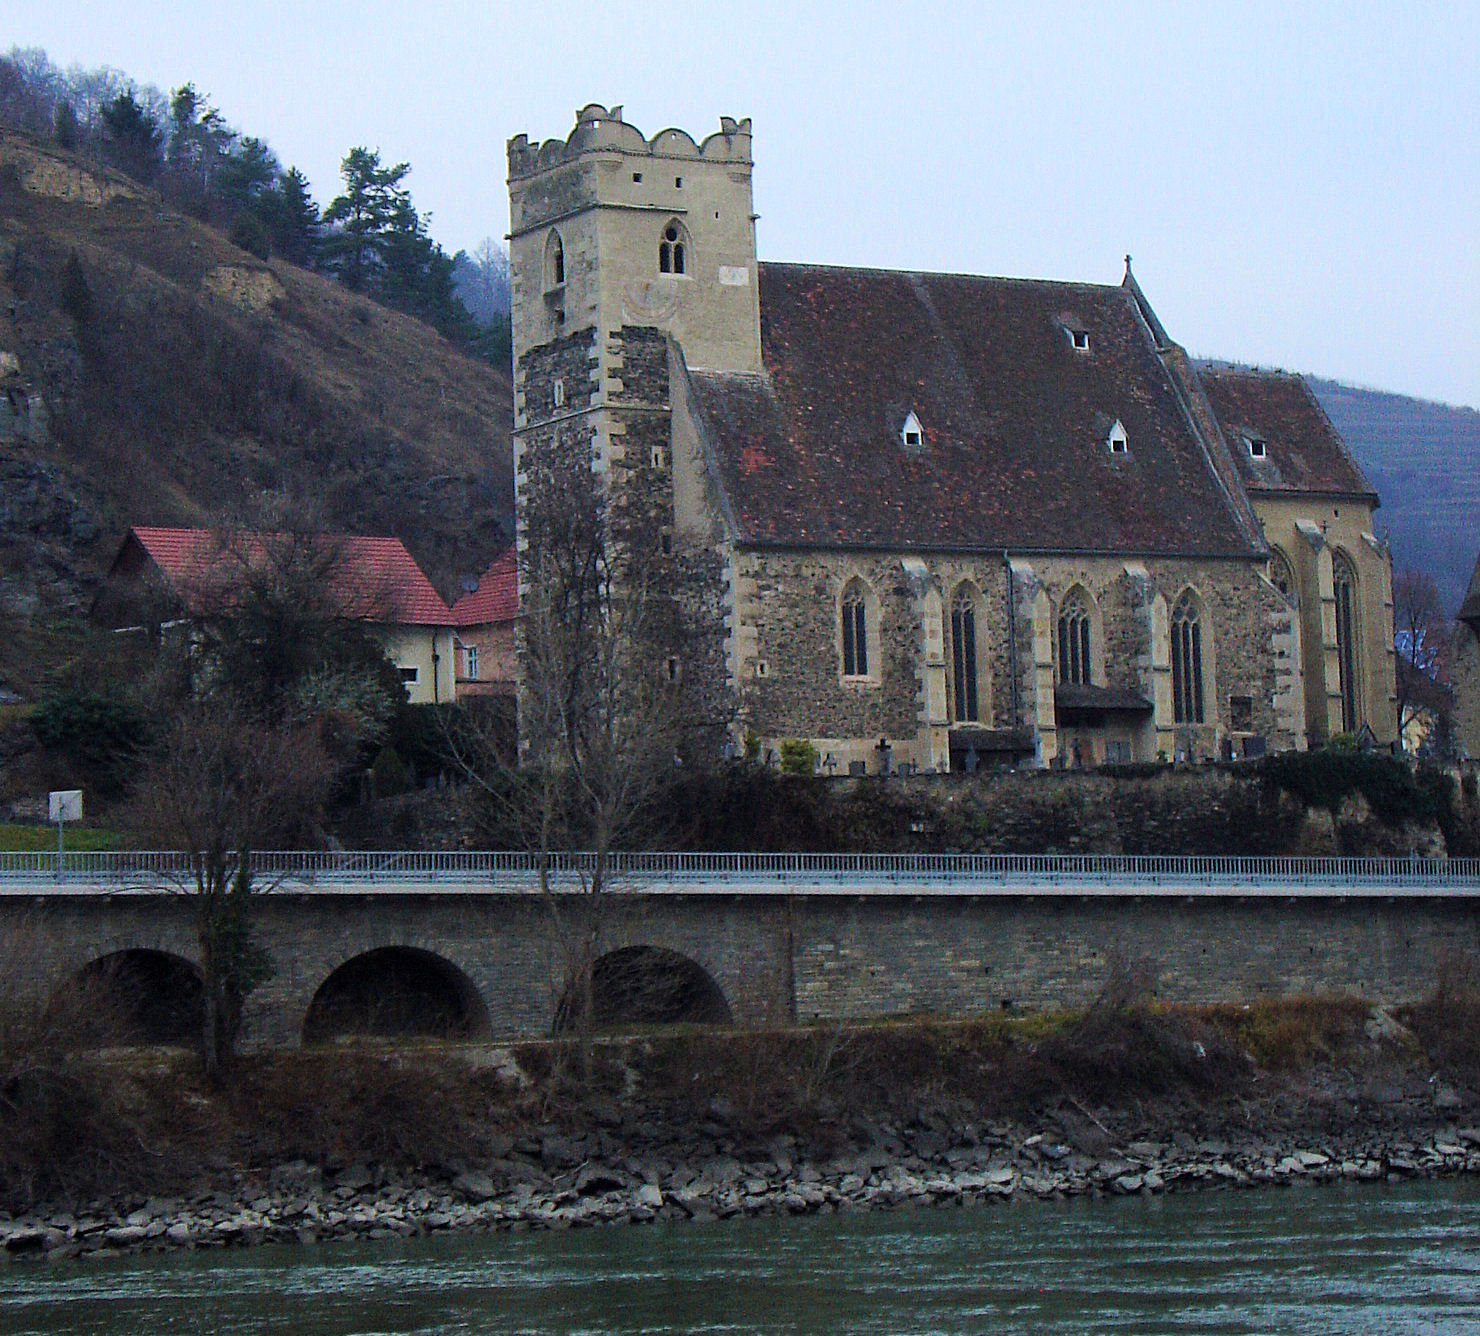 Saint Michael's is the oldest of all of the churches in Austria's Wachau Valley.